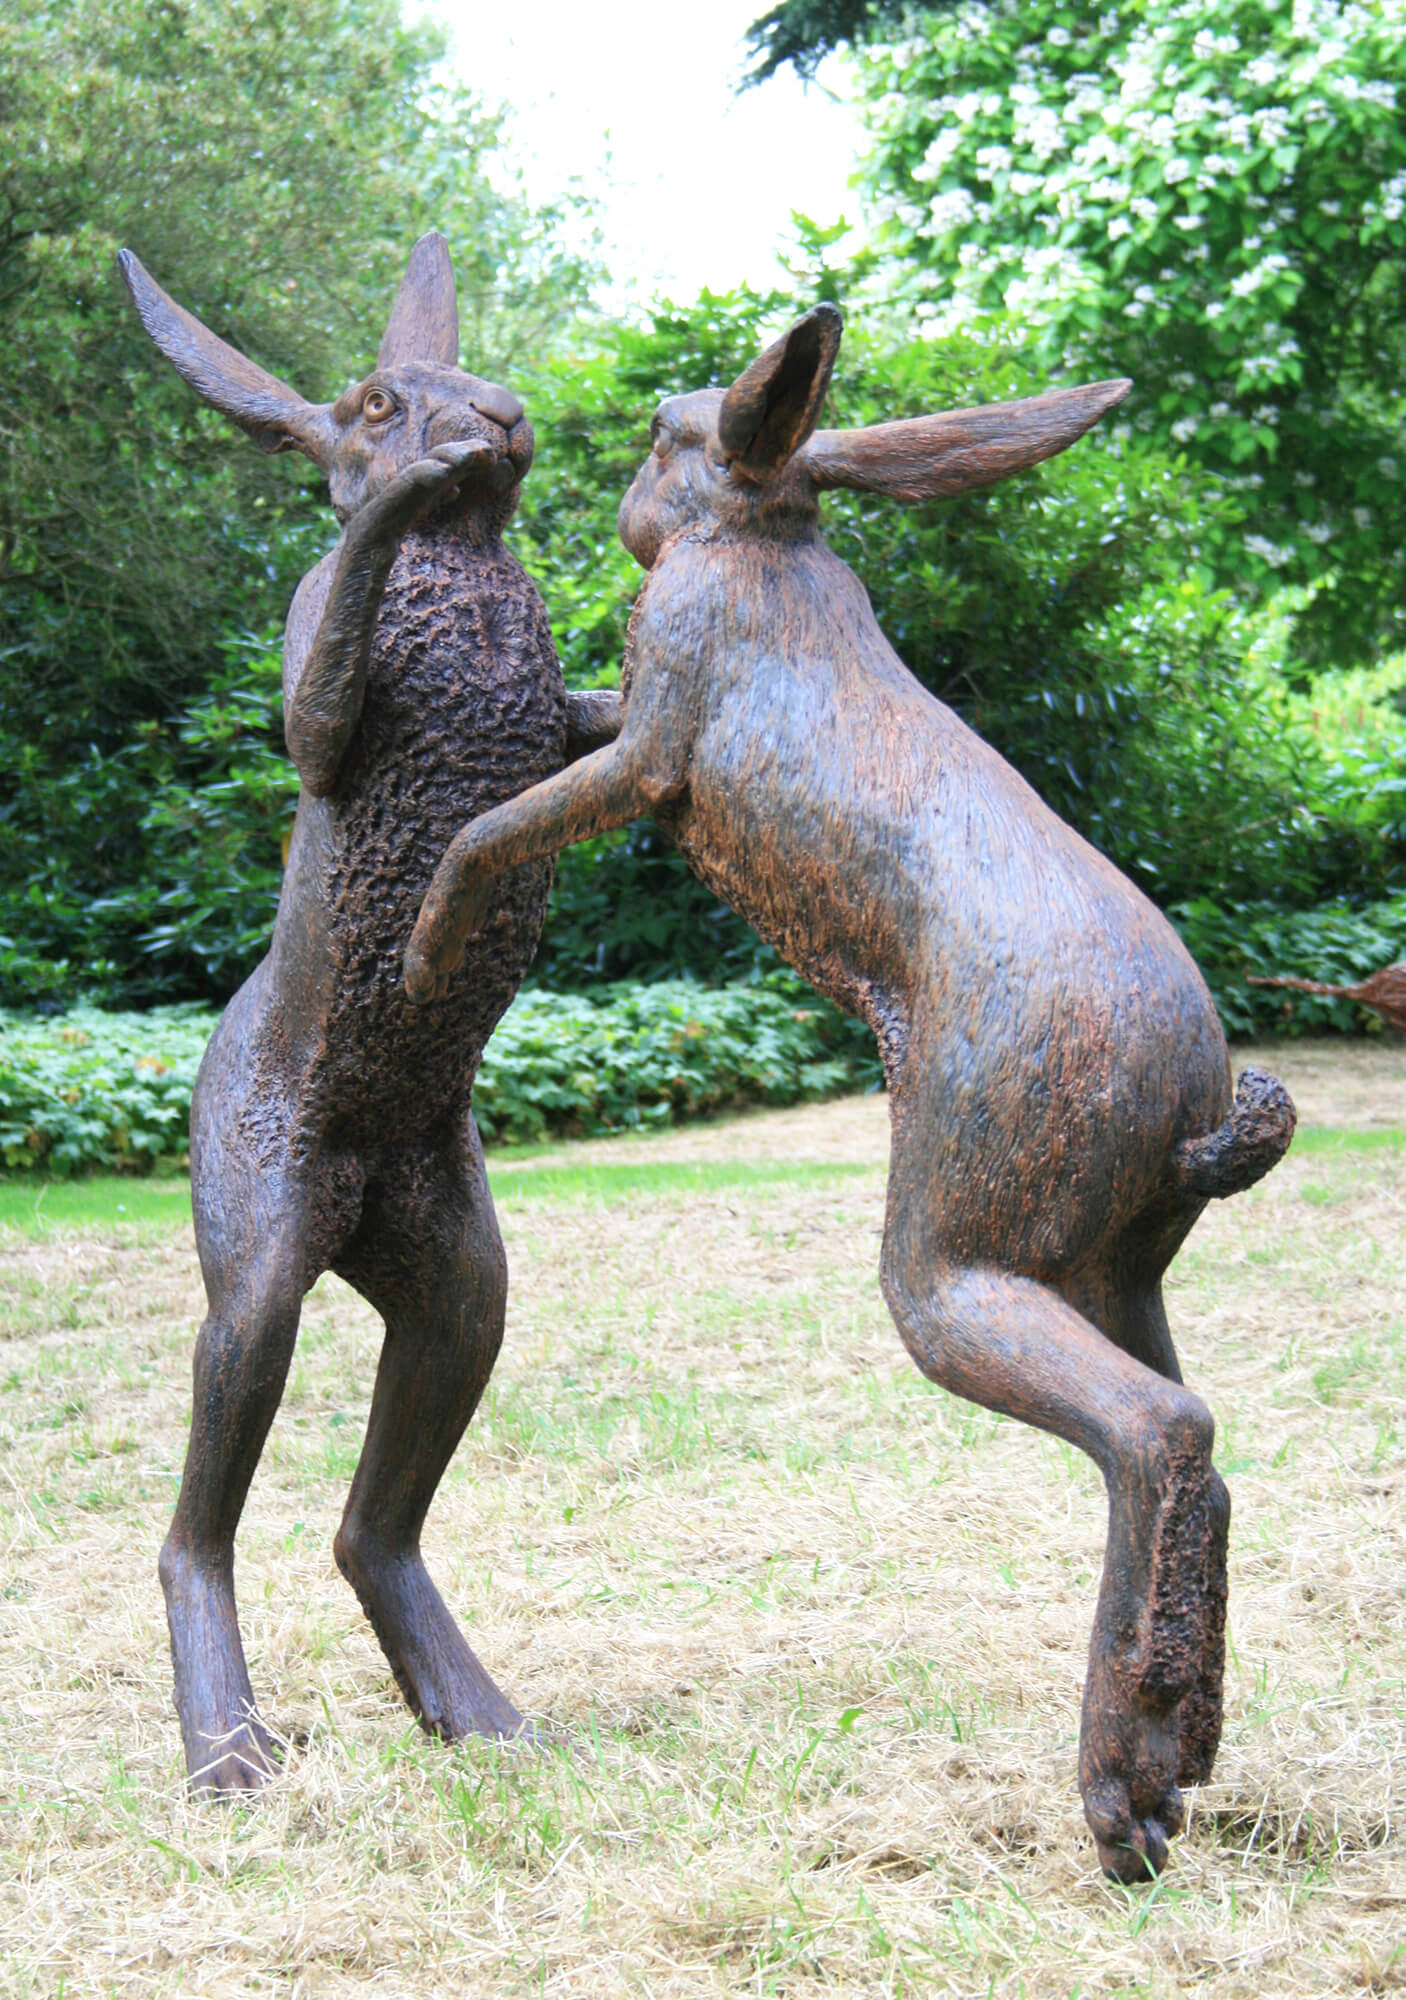 Large Boxing Hares front-view